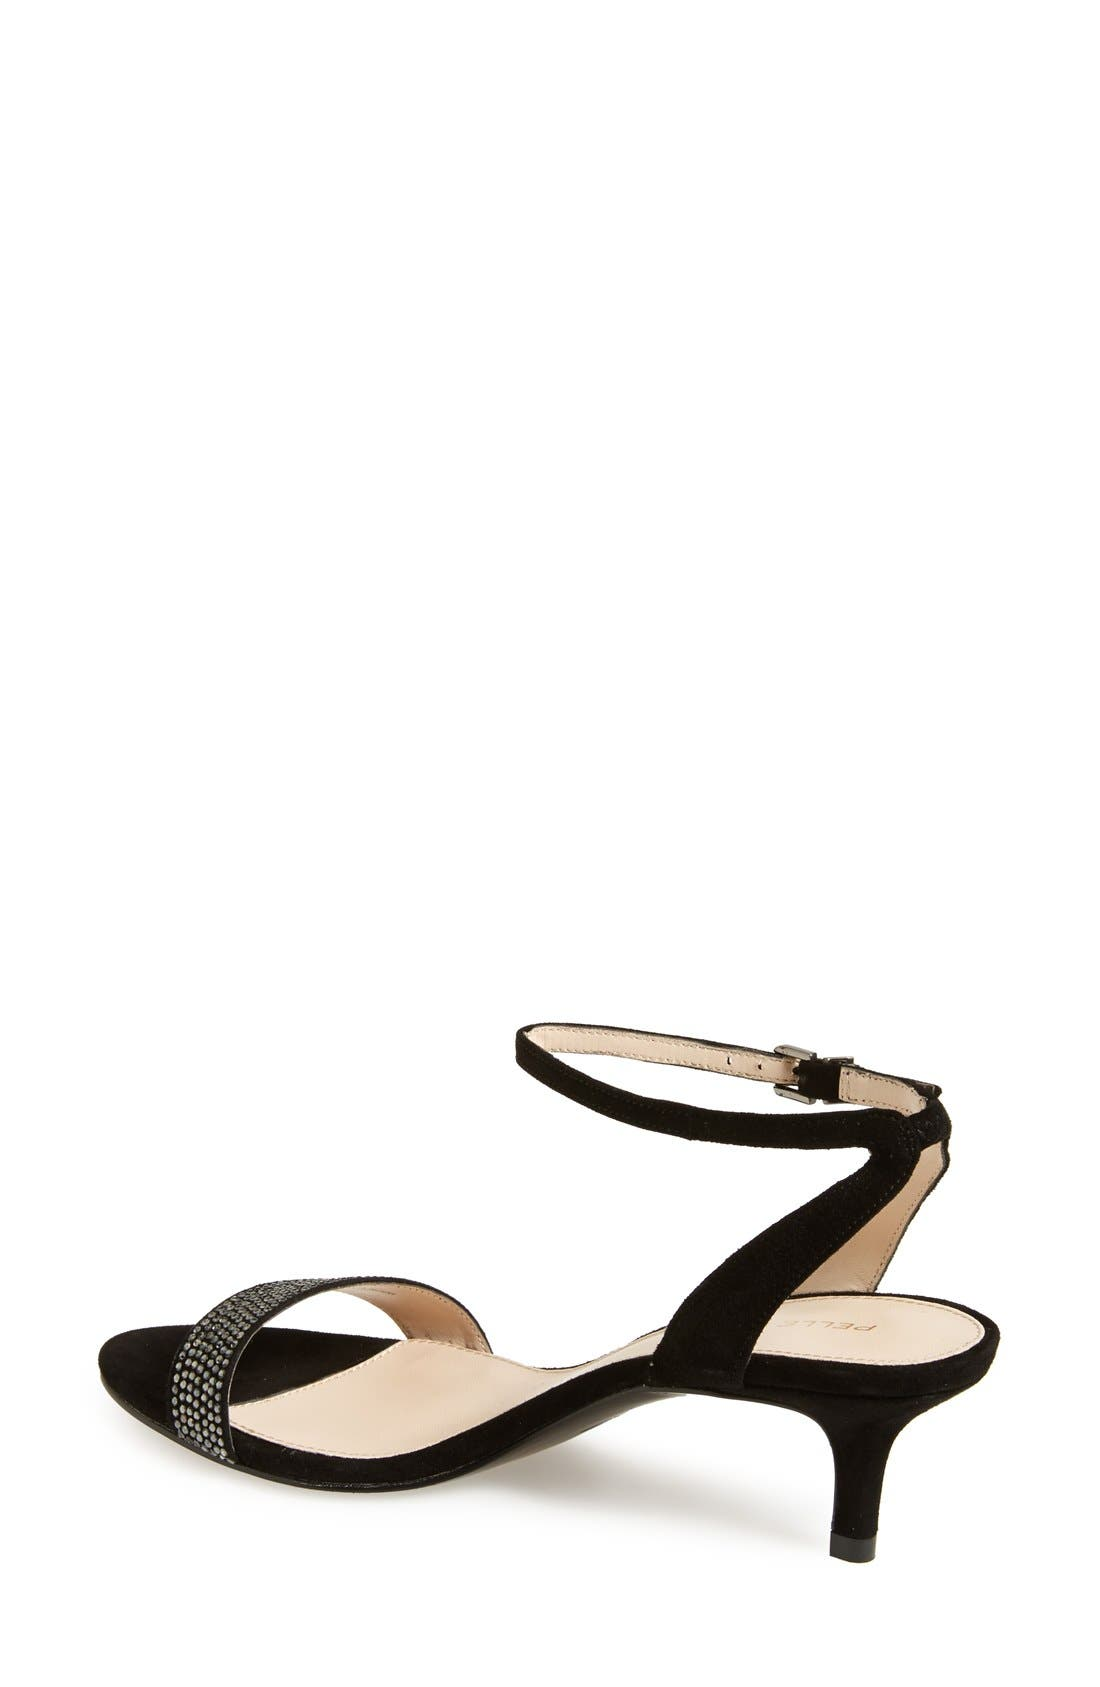 'Fabia' Sandal,                             Alternate thumbnail 3, color,                             BLACK SUEDE